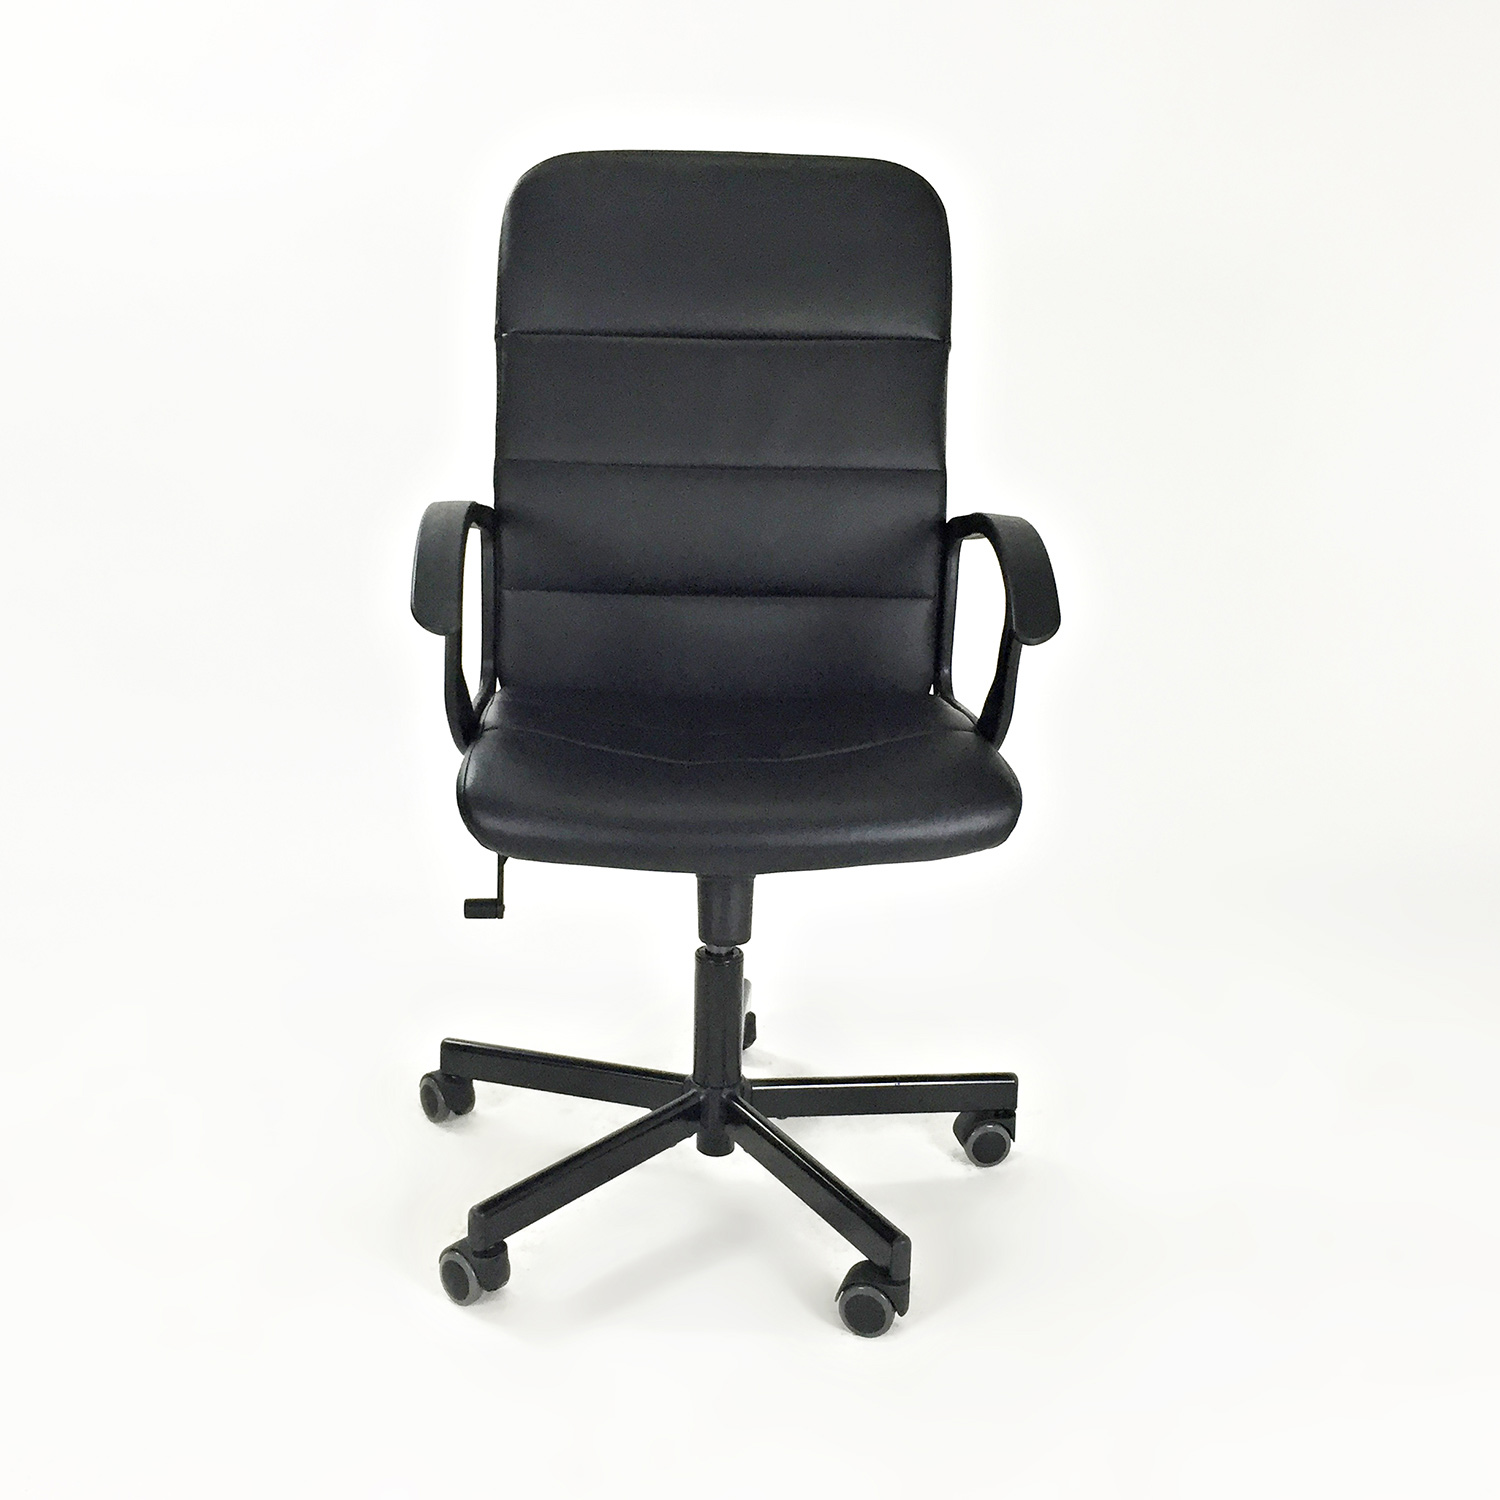 IKEA Black Office Chair / Chairs